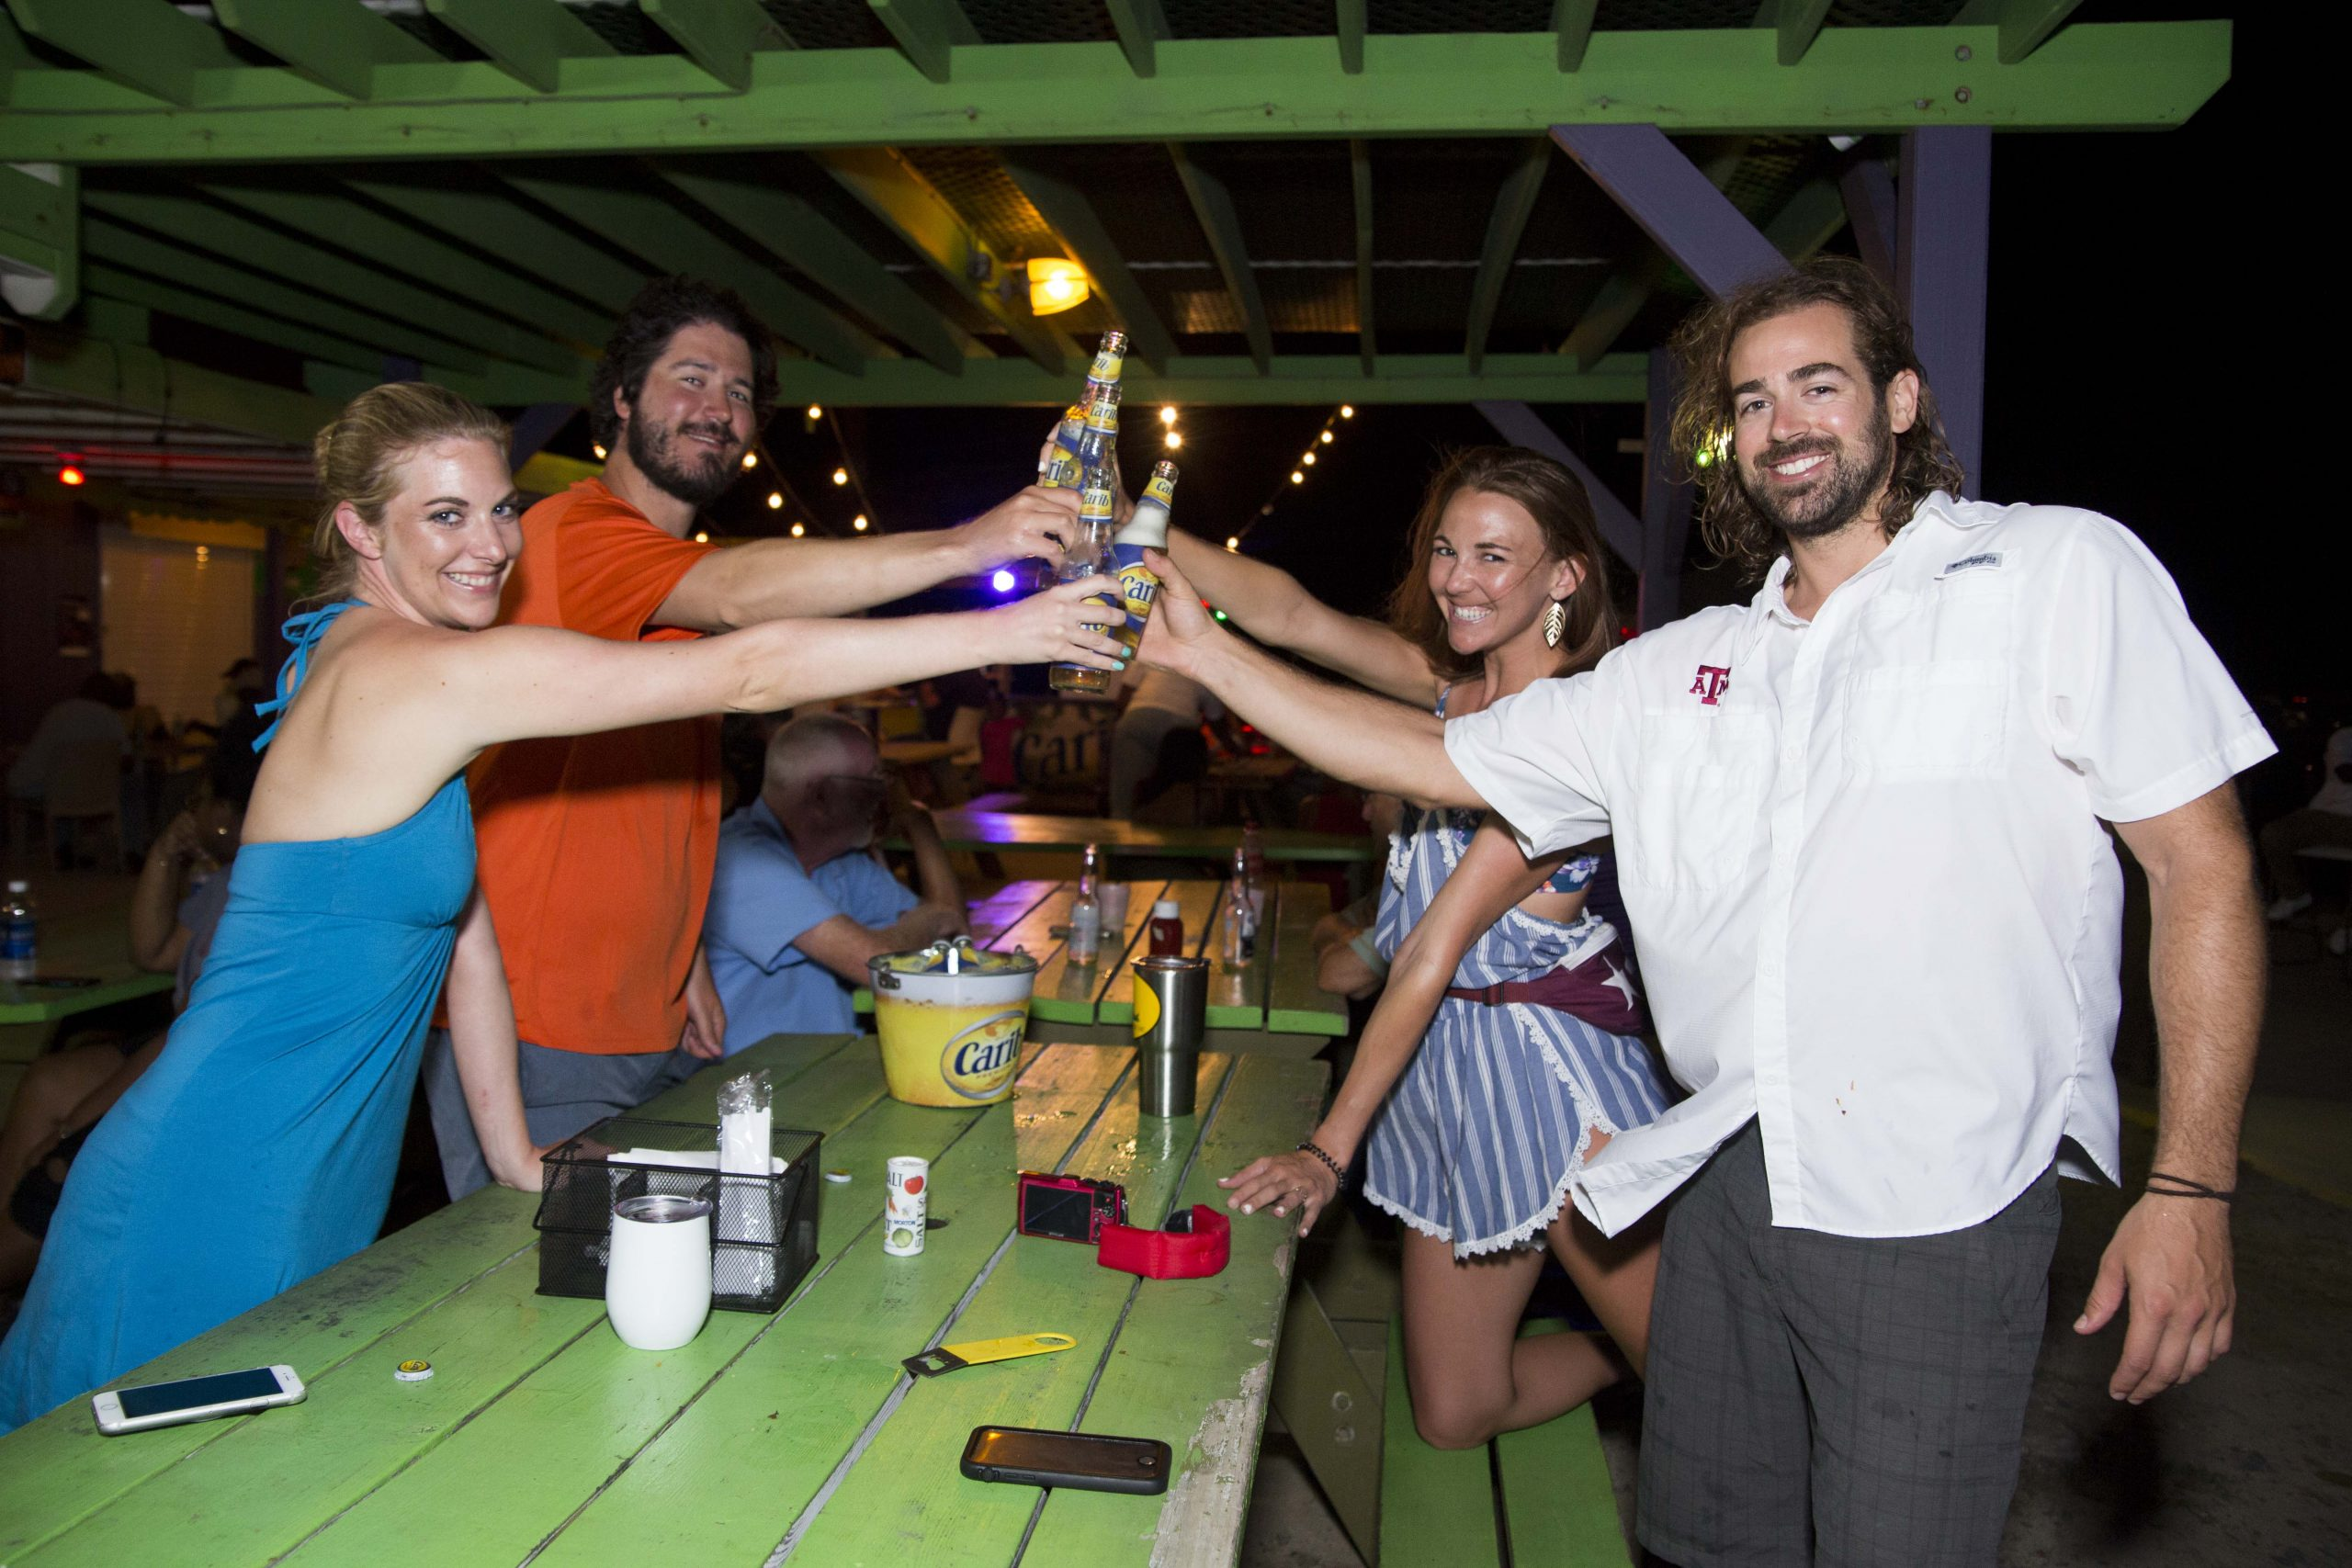 carib specials at cheers at vybez & chill at trellis bay market